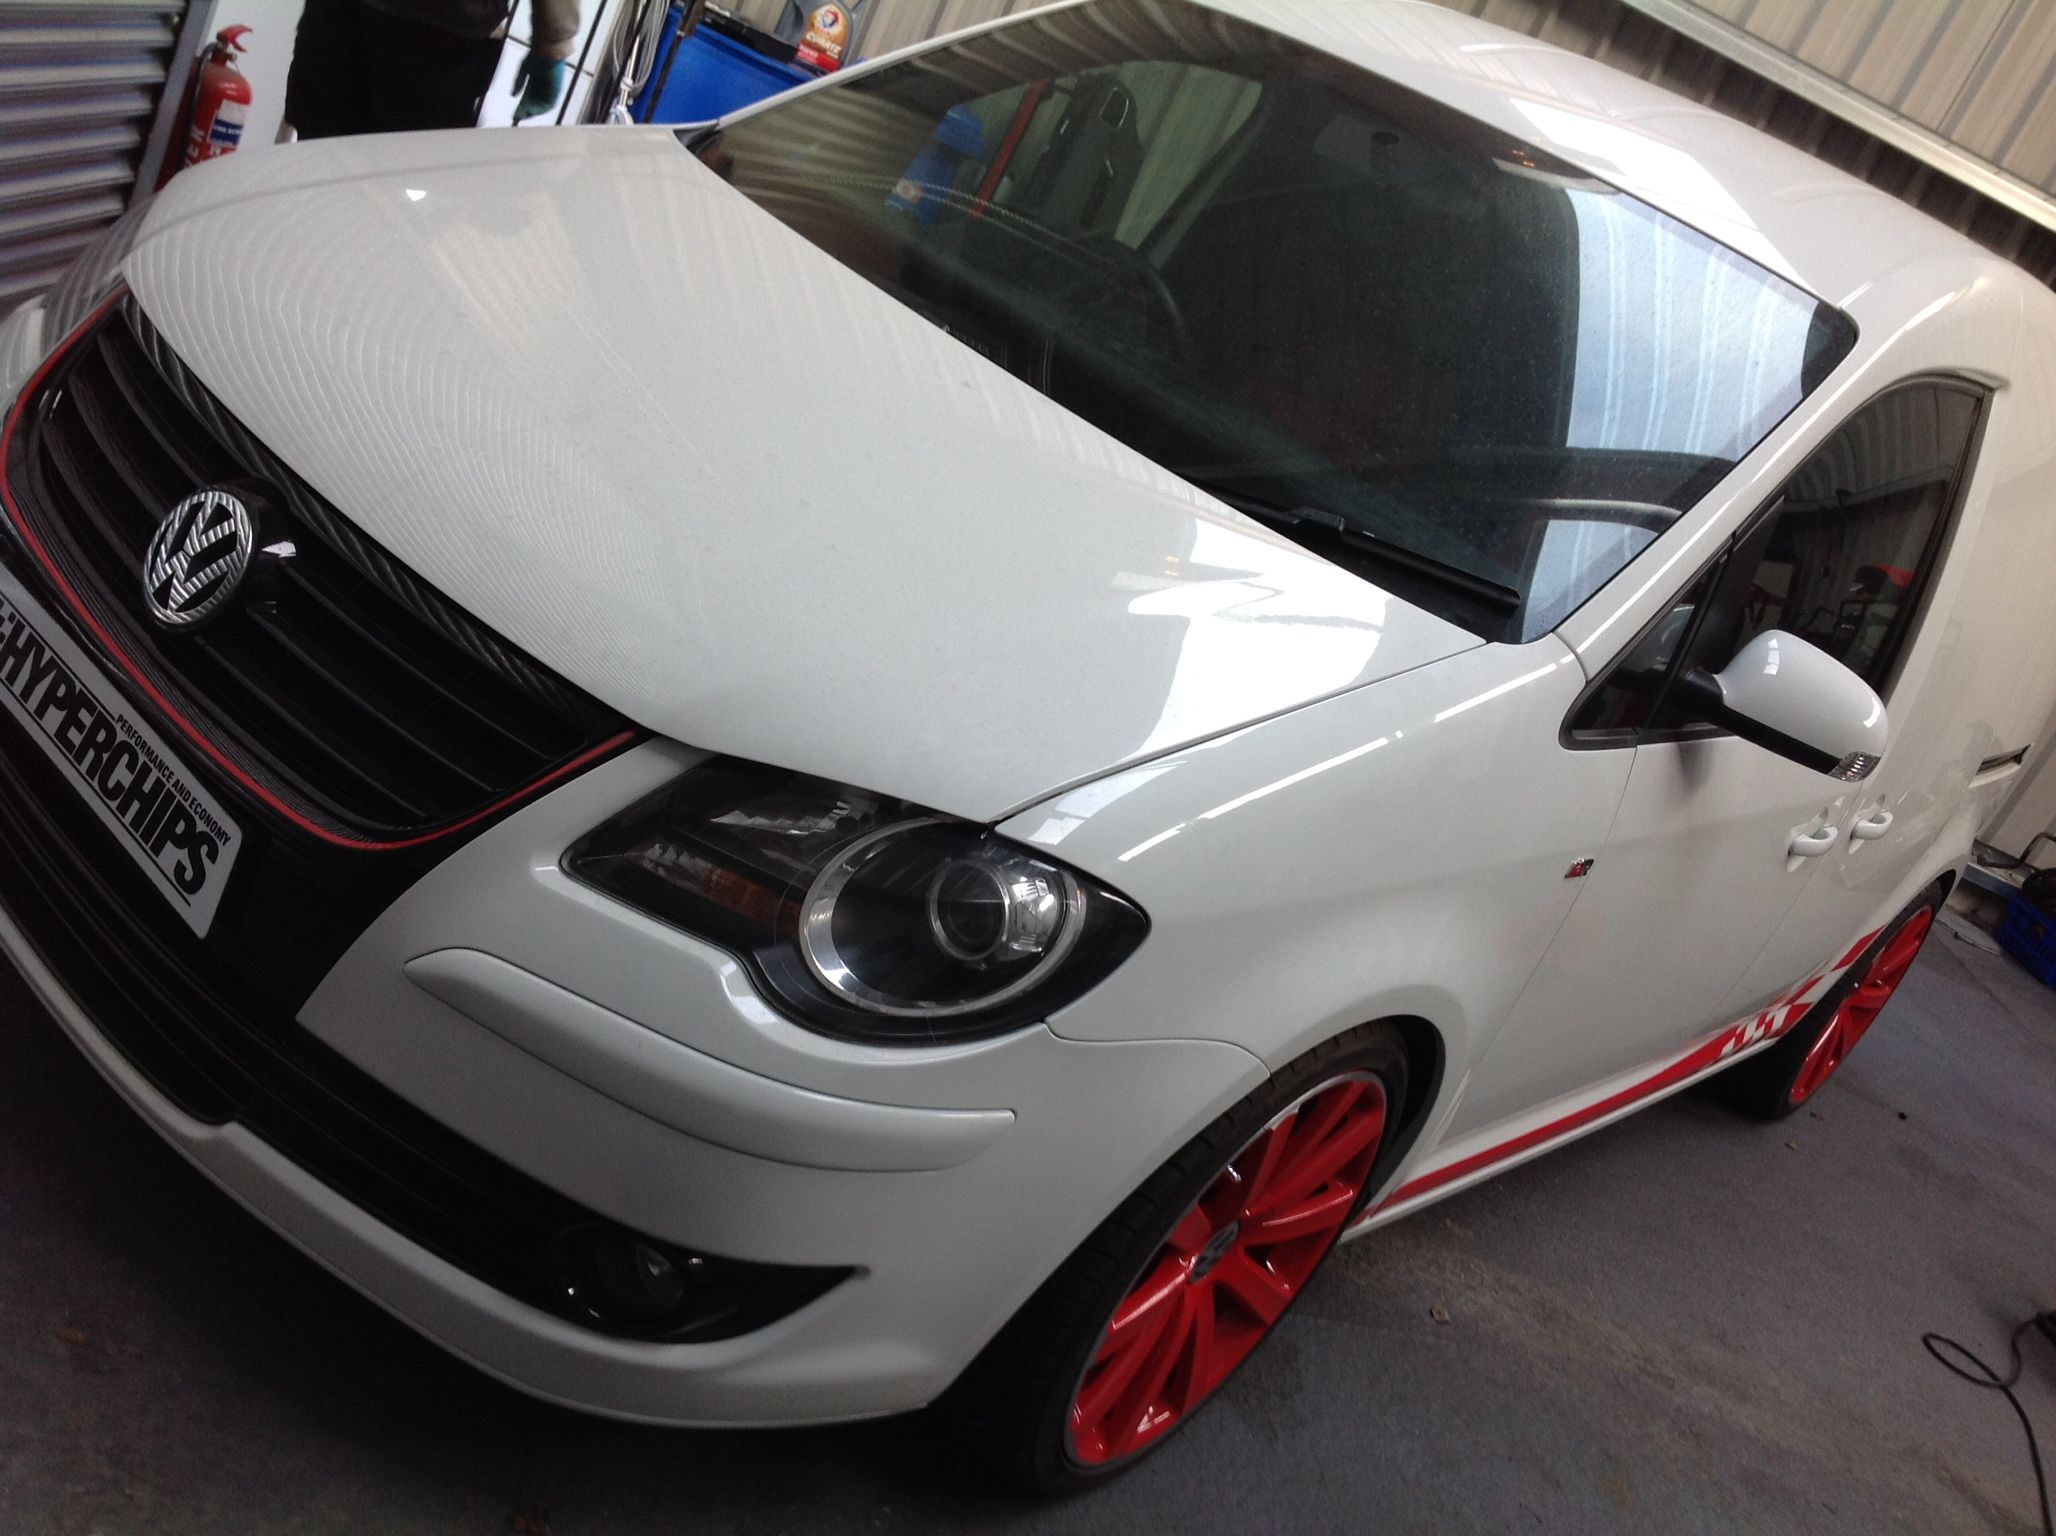 Vw caddy we remapped